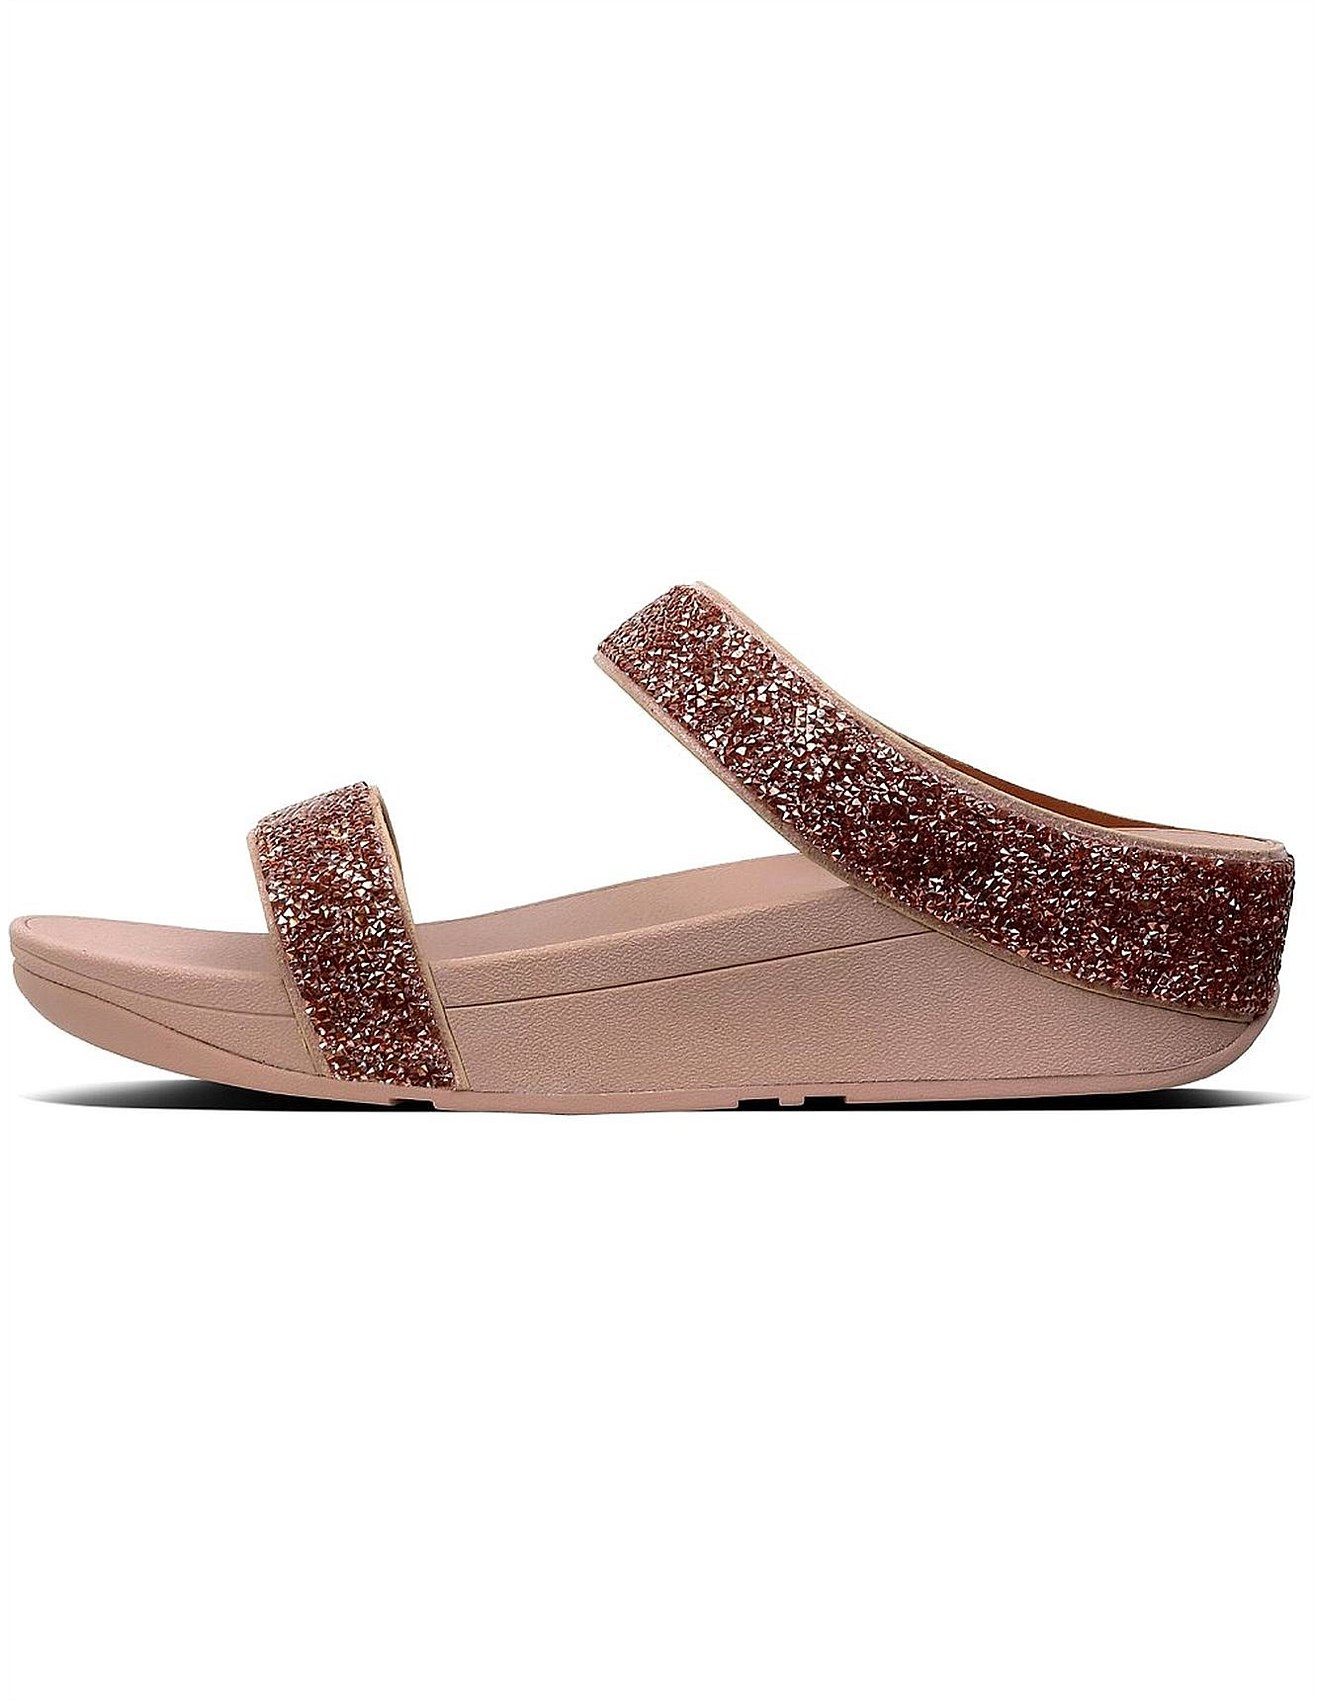 39c6d2920a7b FitFlop